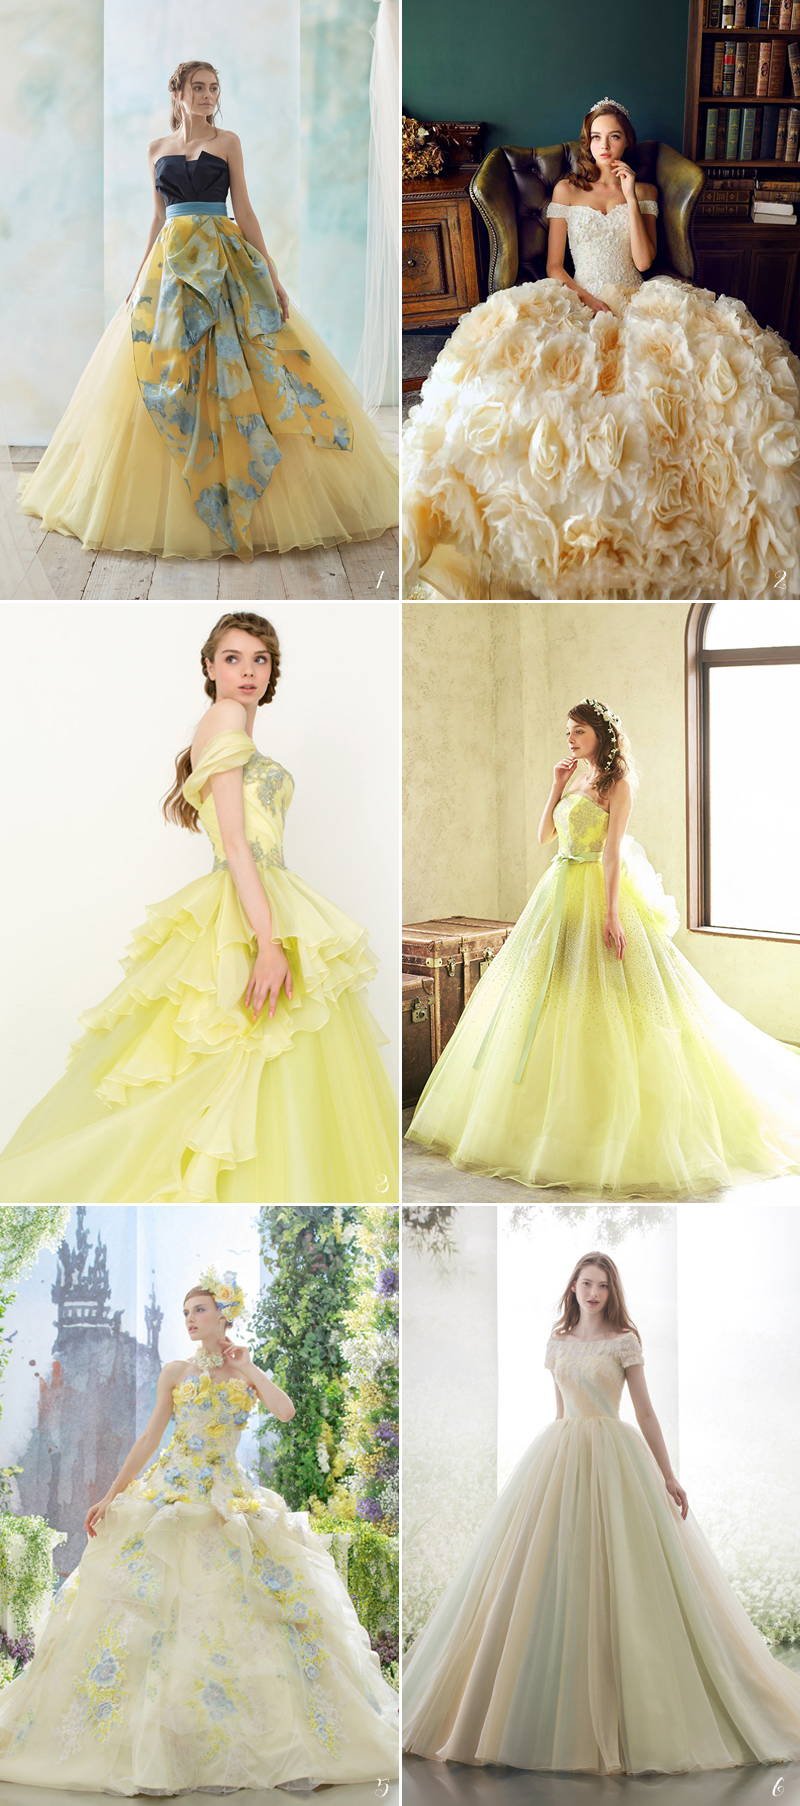 Belle Wedding Dress With Touch Of Yellow